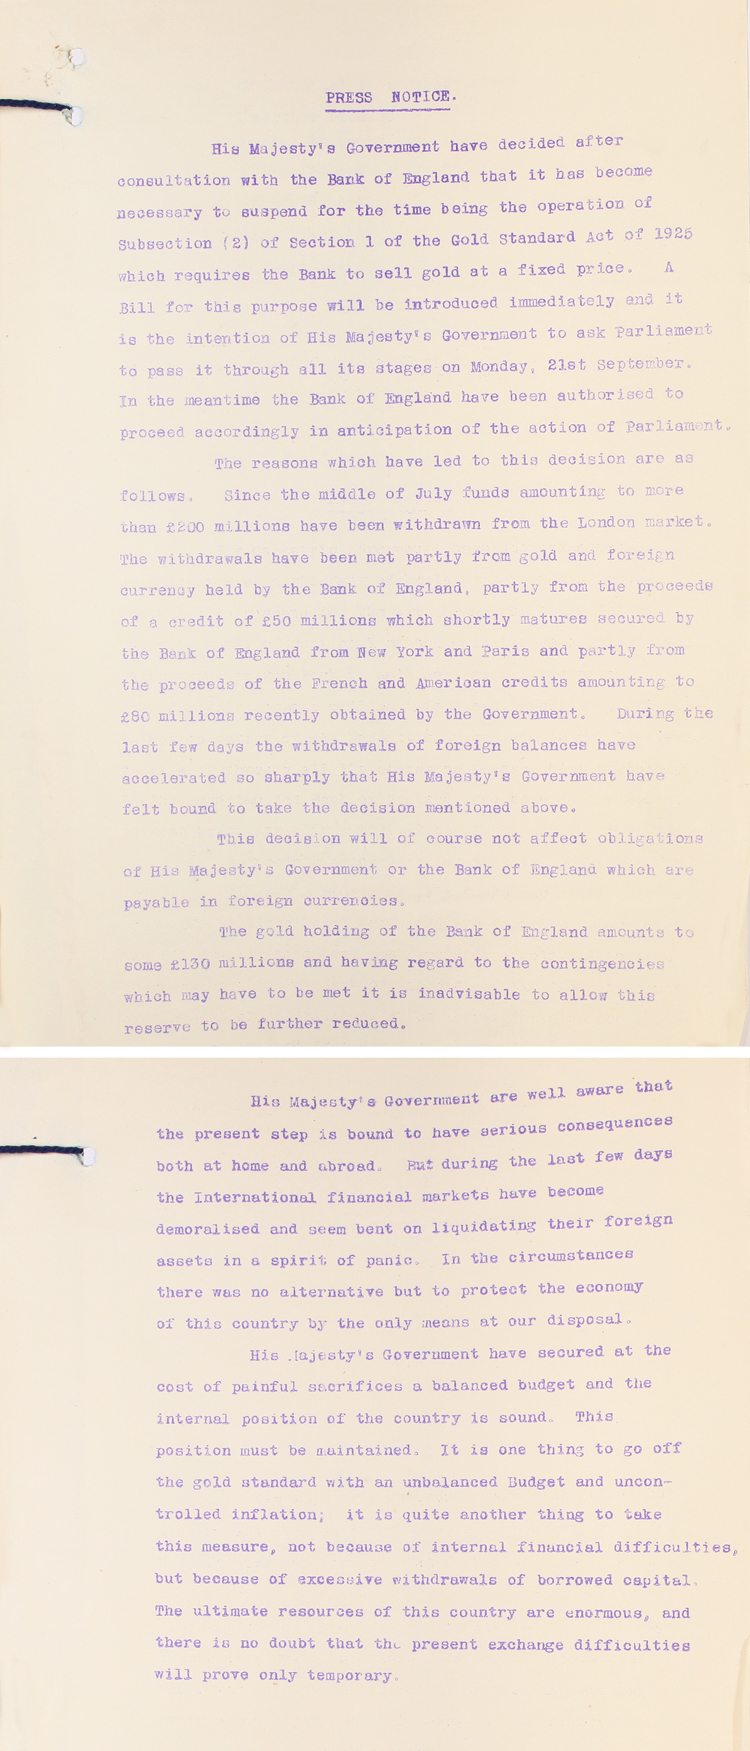 Treasury statement for the Press on Britain leaving the Gold Standard, 20th September 1931 (T 163/68/18)